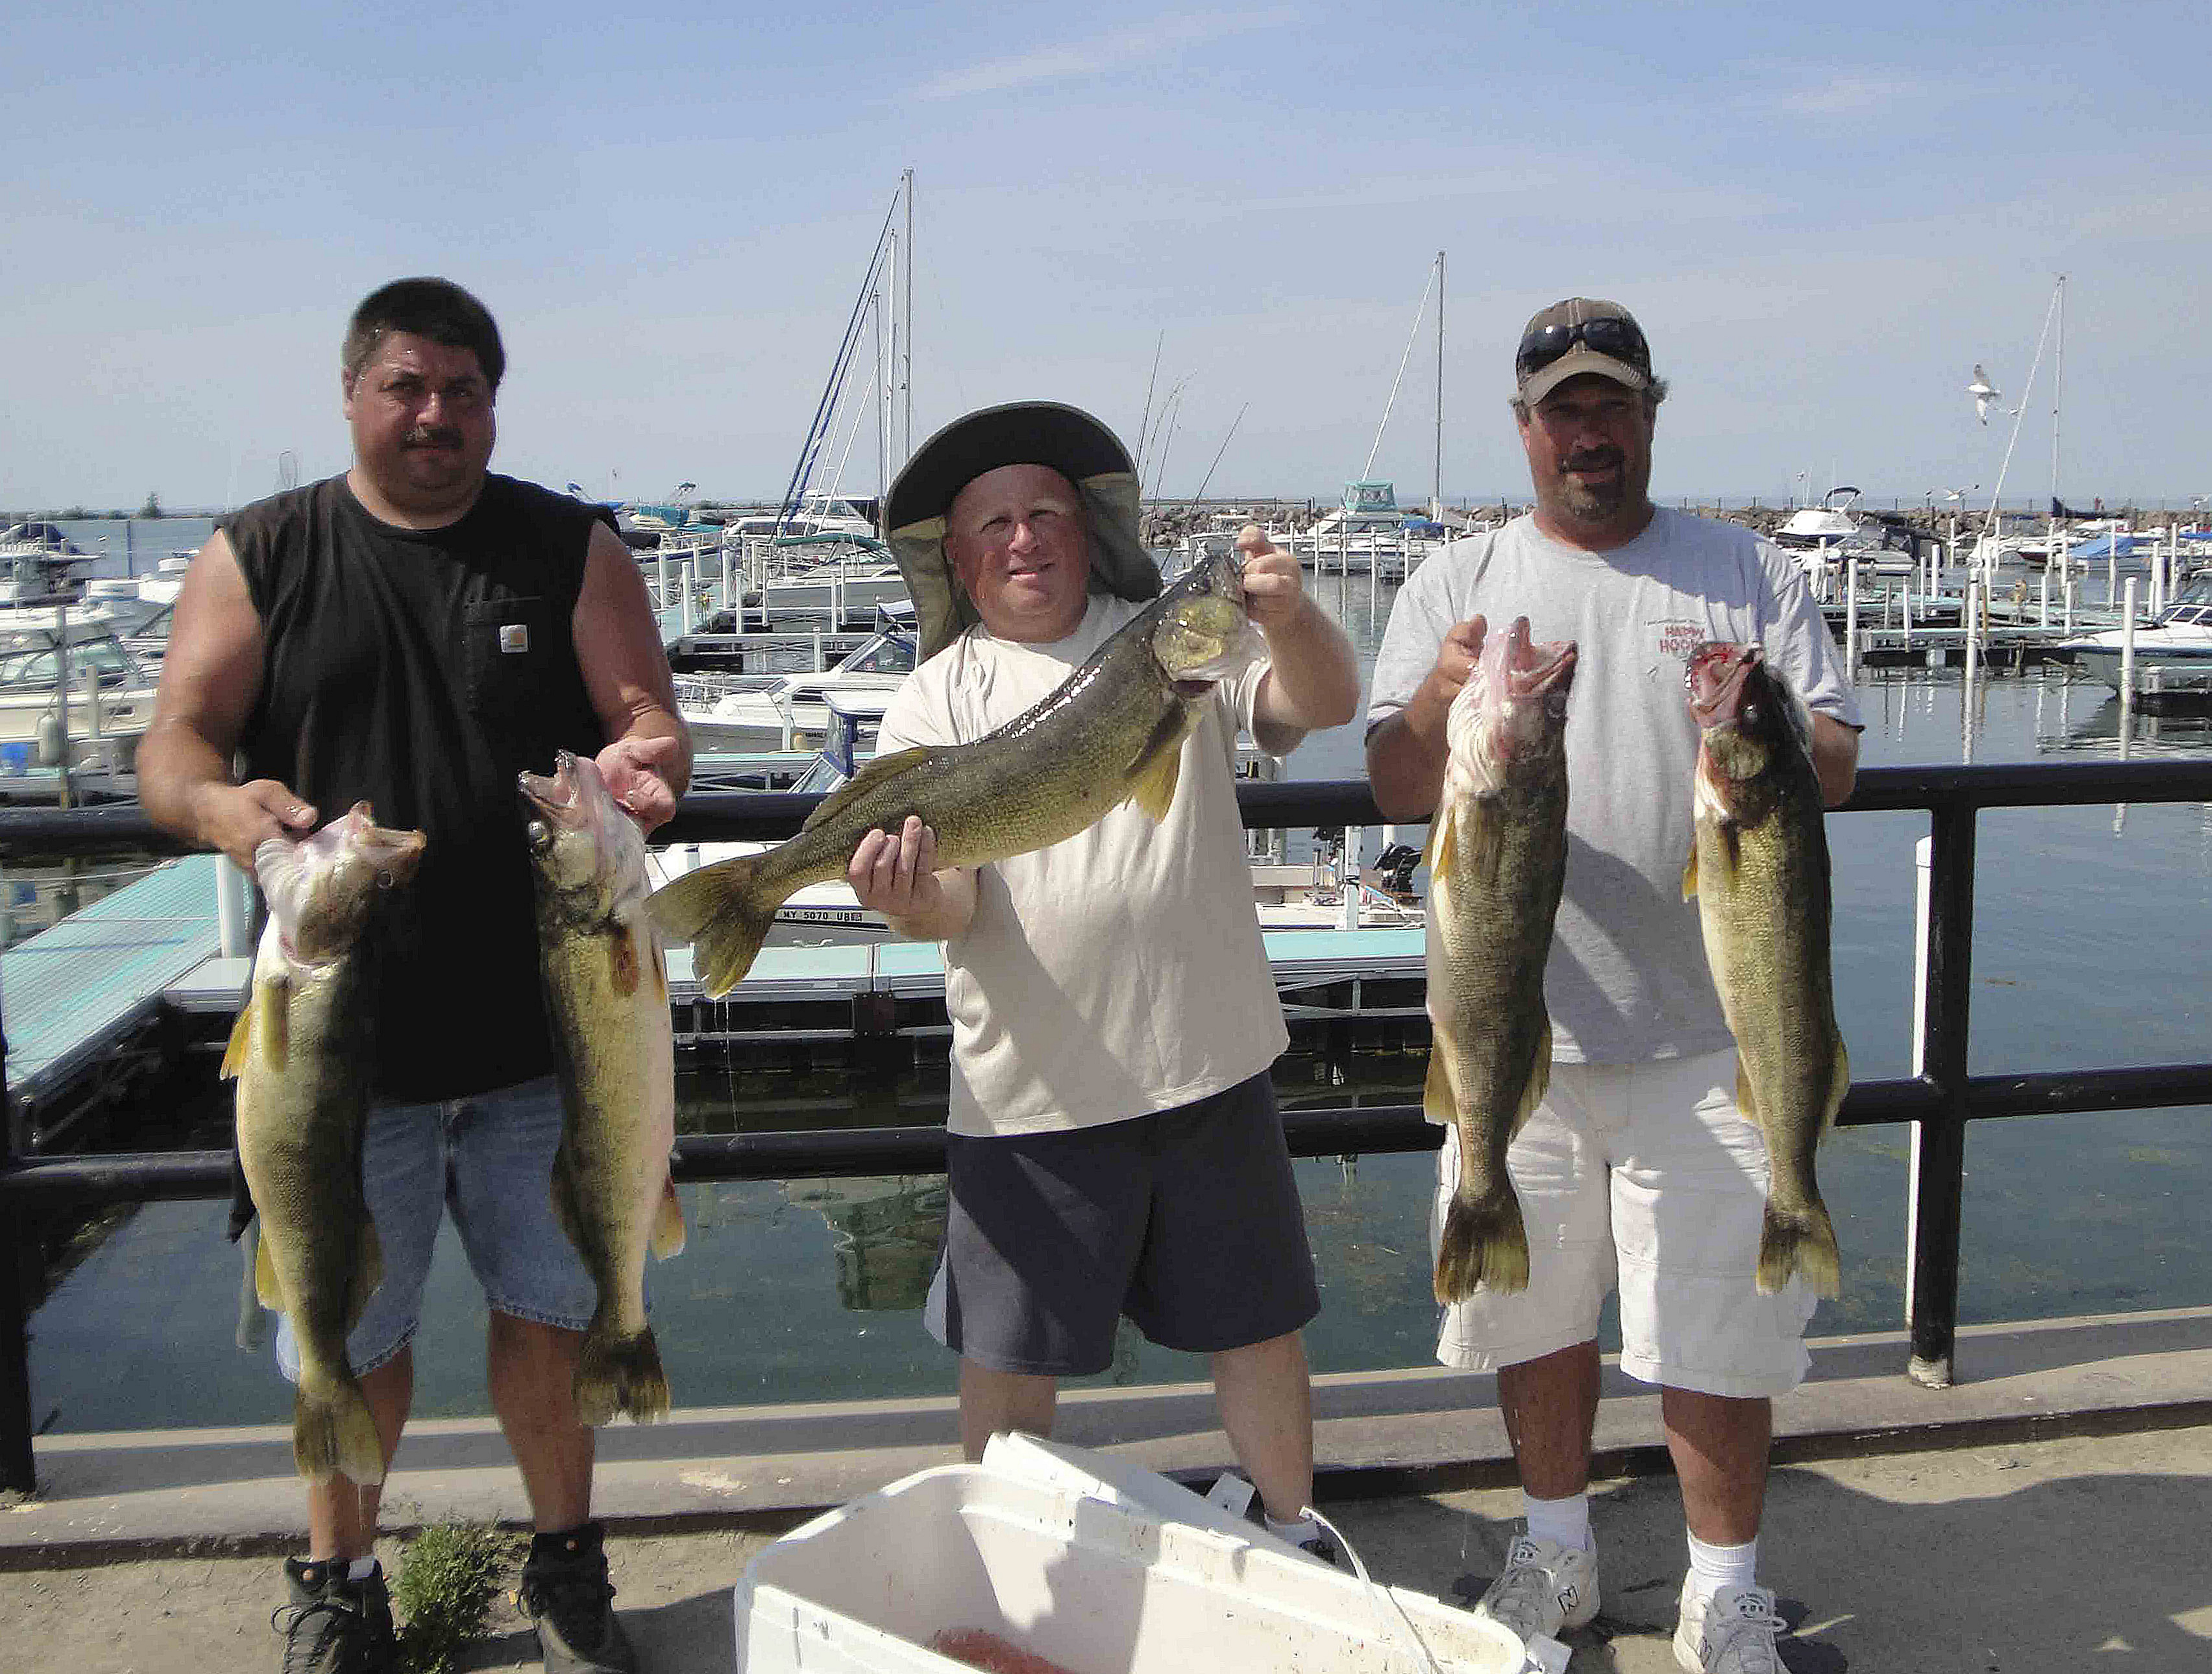 The team of Dave Beres, Capt. Rick Kacmarski and Scott Spier weighed in a record total of walleye in a Dunkirk Harbor contest on July 12.